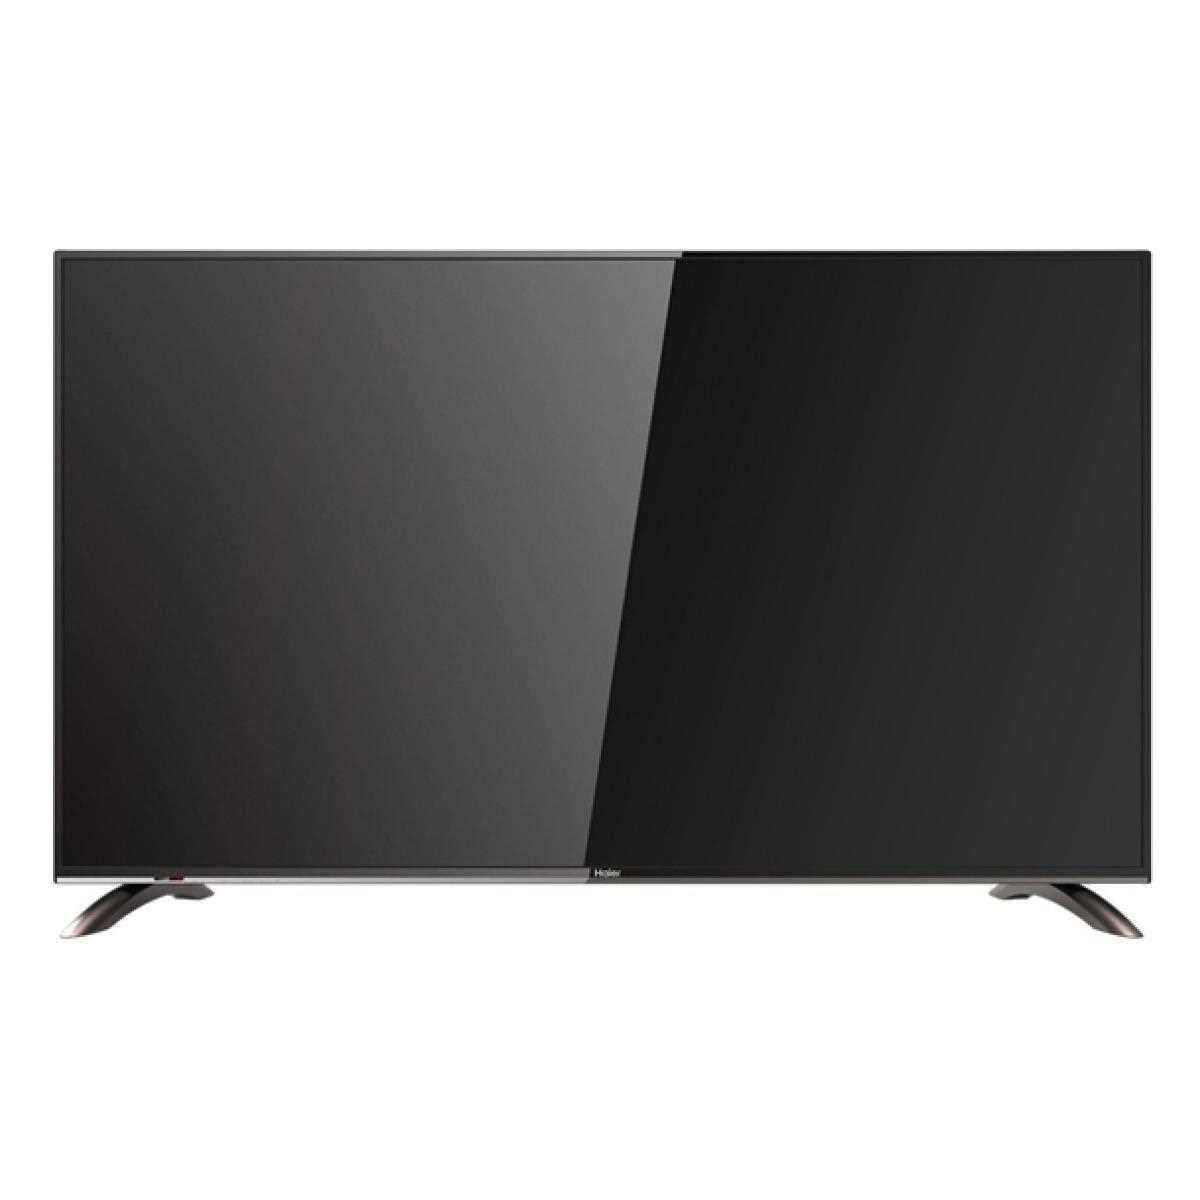 haier tv 50 inch. haier le42b9000 42 inch full hd led television price {25 nov 2017} | reviews and specifications tv 50 e